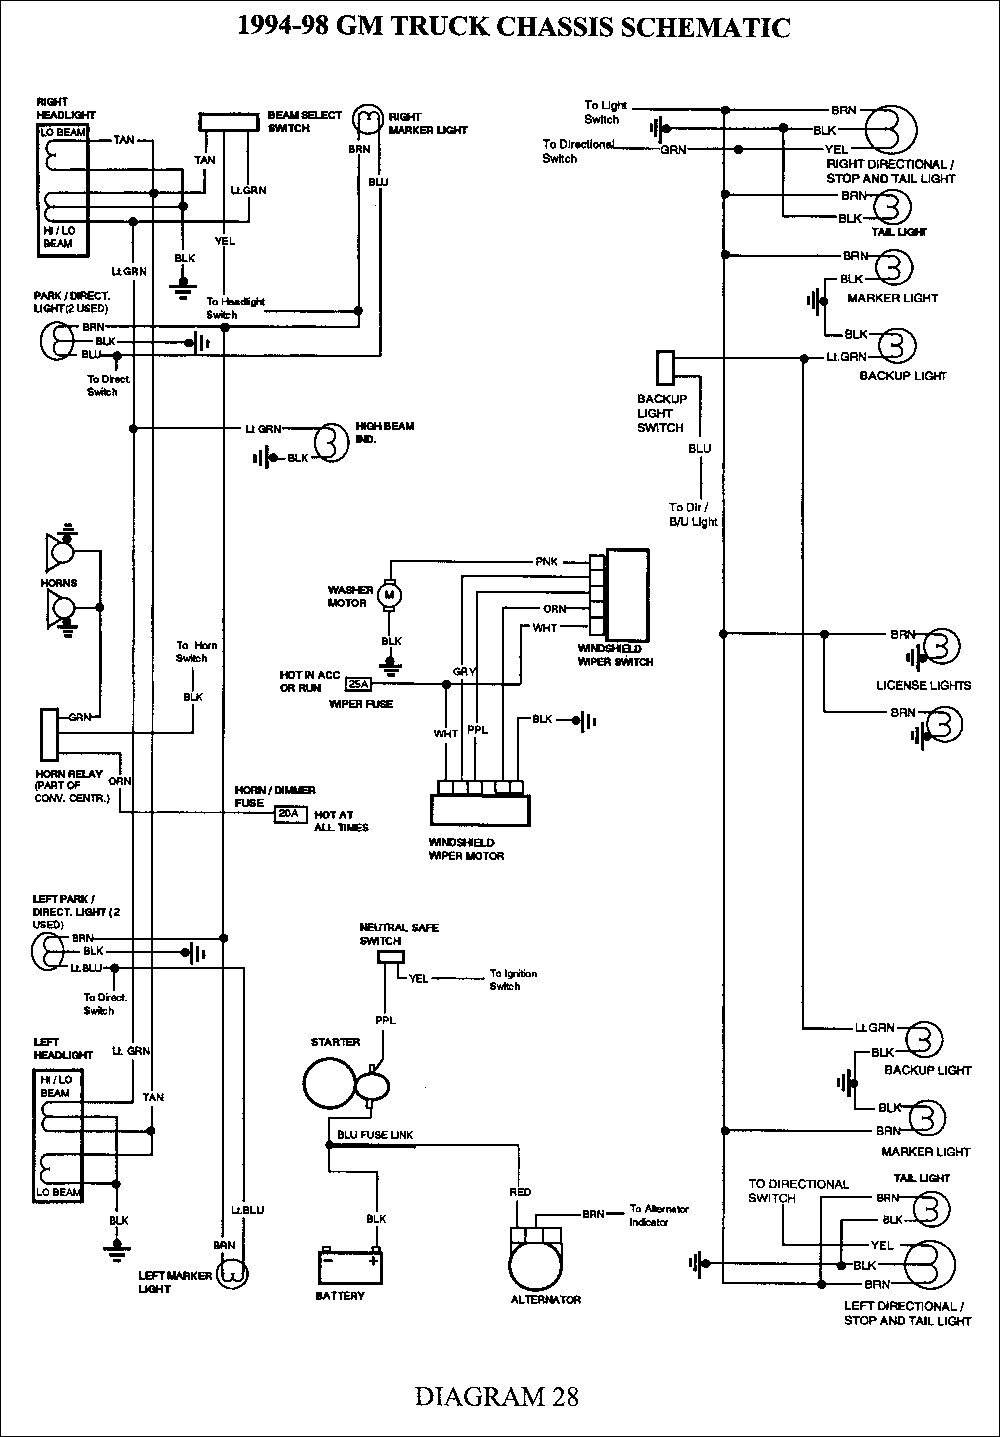 Semi Trailor Wiring - Wiring Diagram